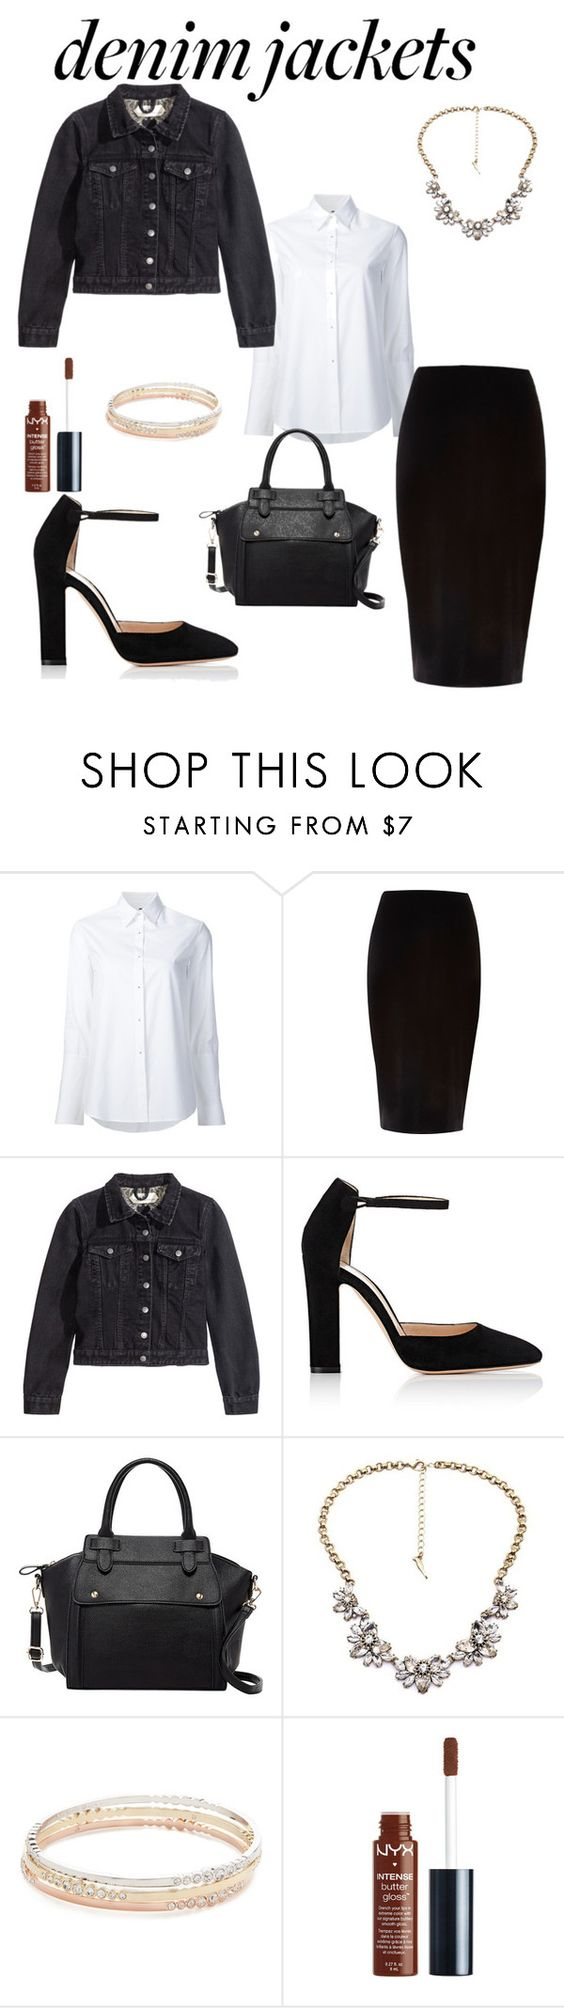 """Untitled #106"" by classinalwaysinternal ❤ liked on Polyvore featuring Misha Nonoo, River Island, H&M, Gianvito Rossi, Pink Haley, Kate Spade and NYX"